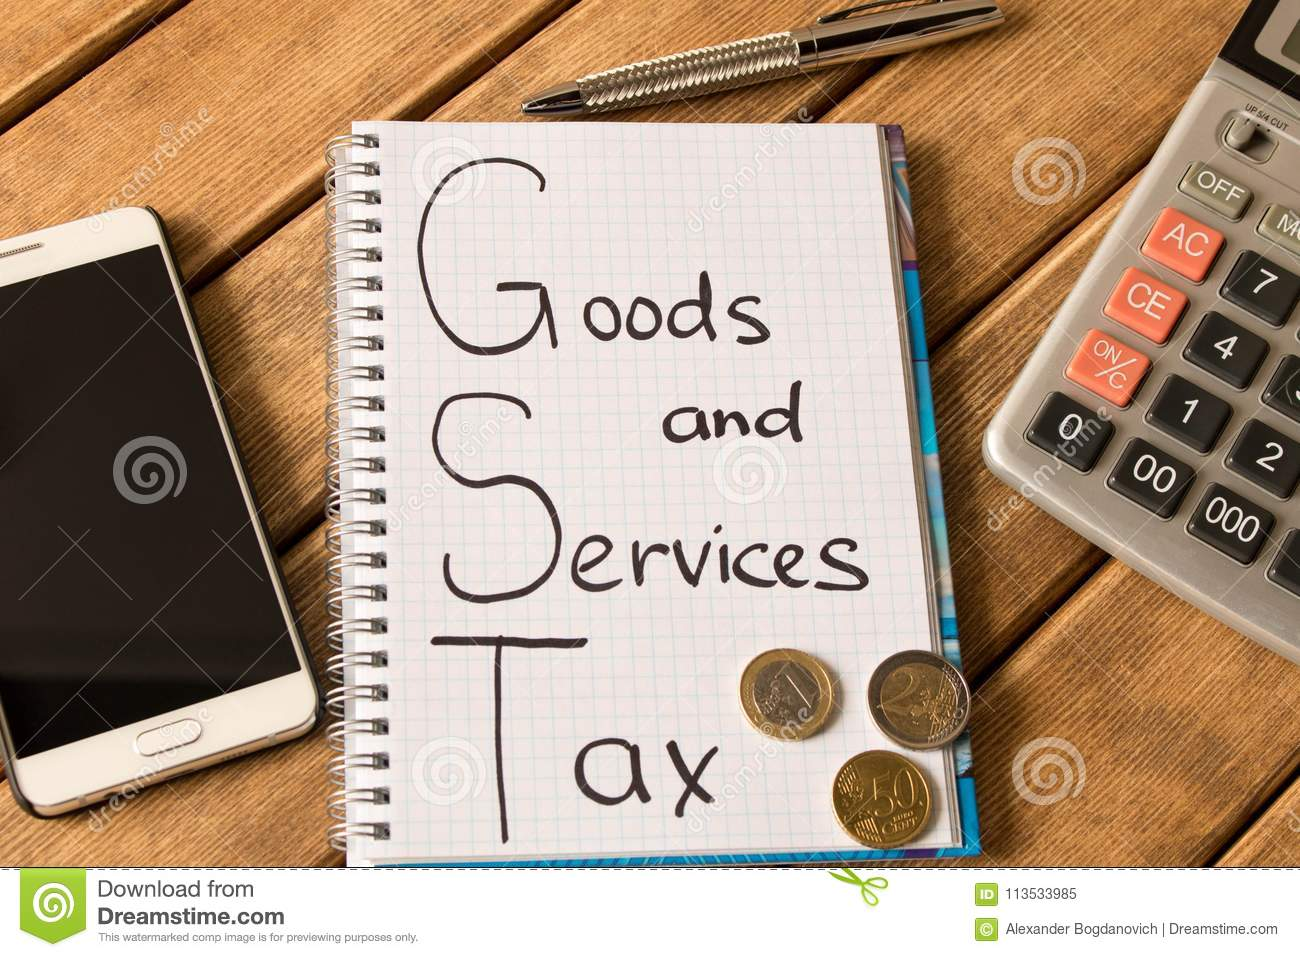 Good service and tax . Notepad, pen, coins, smart phone on wood